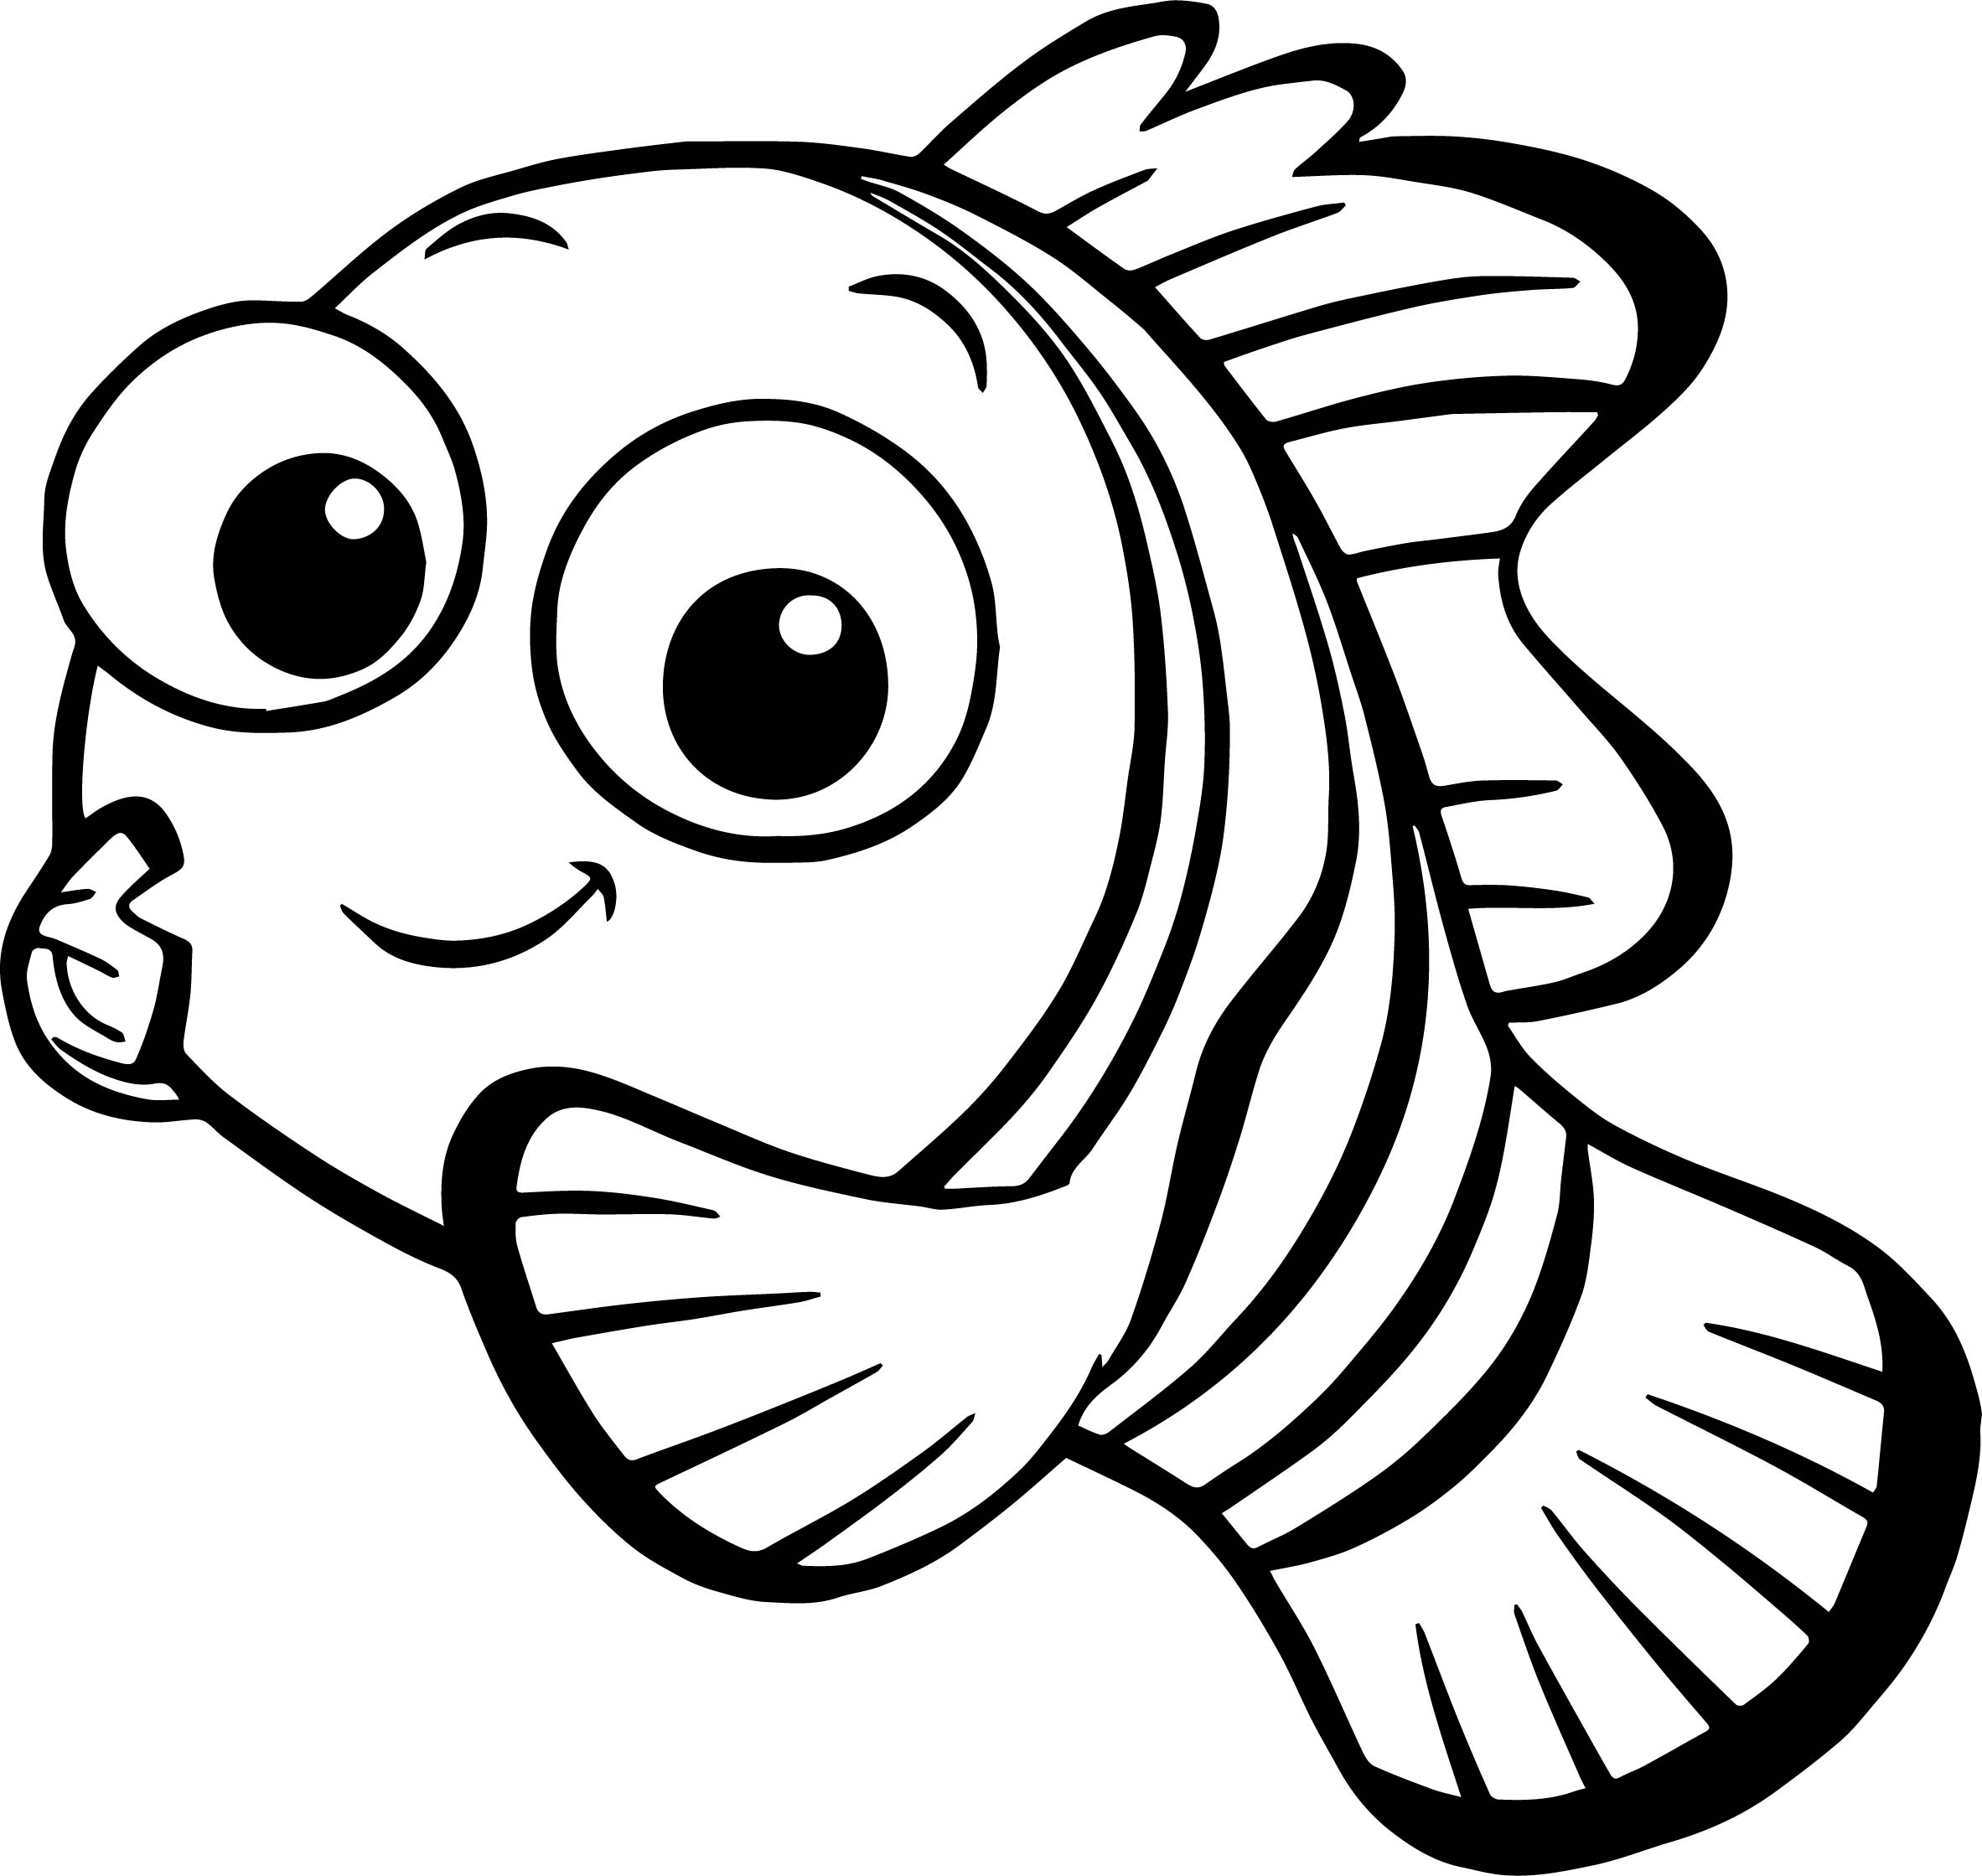 clipart for coloring simple coloring pages to download and print for free for clipart coloring